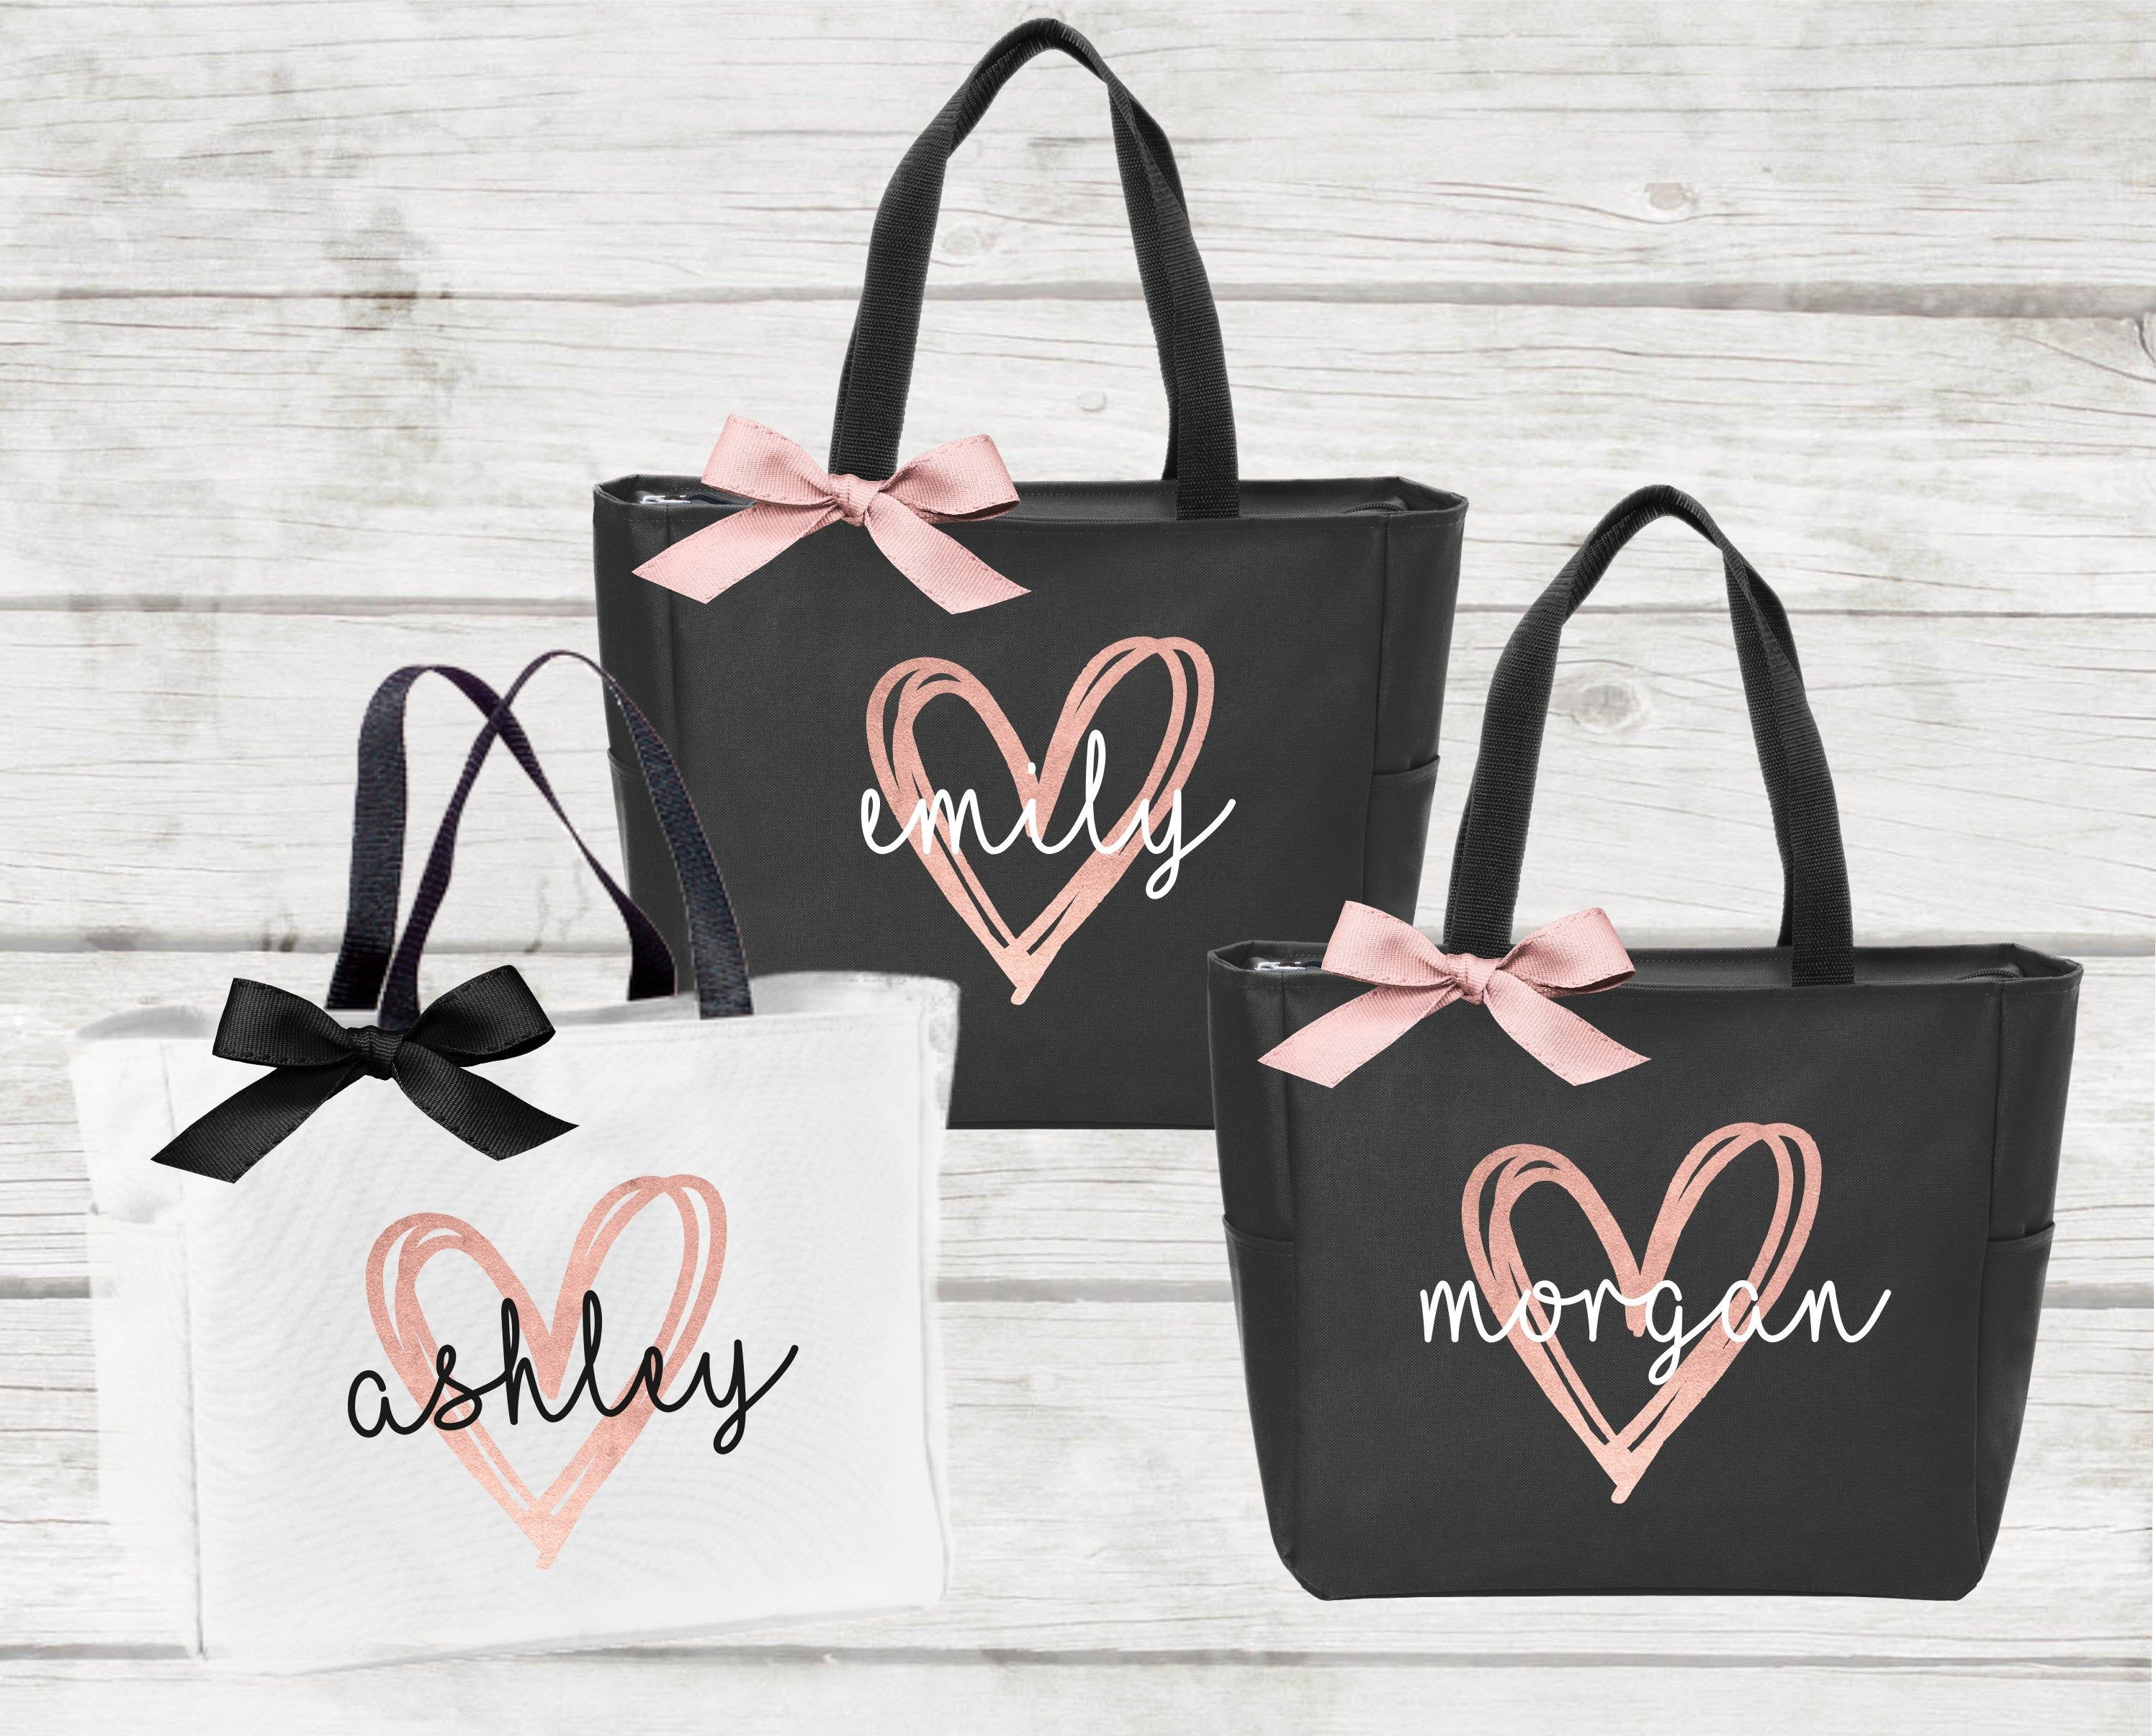 Bridesmaid Tote Bags, Maid of Honor Tote, Personalized Bridesmaid Bags, Bridal Party Bridesmaid Gifts (BR063)